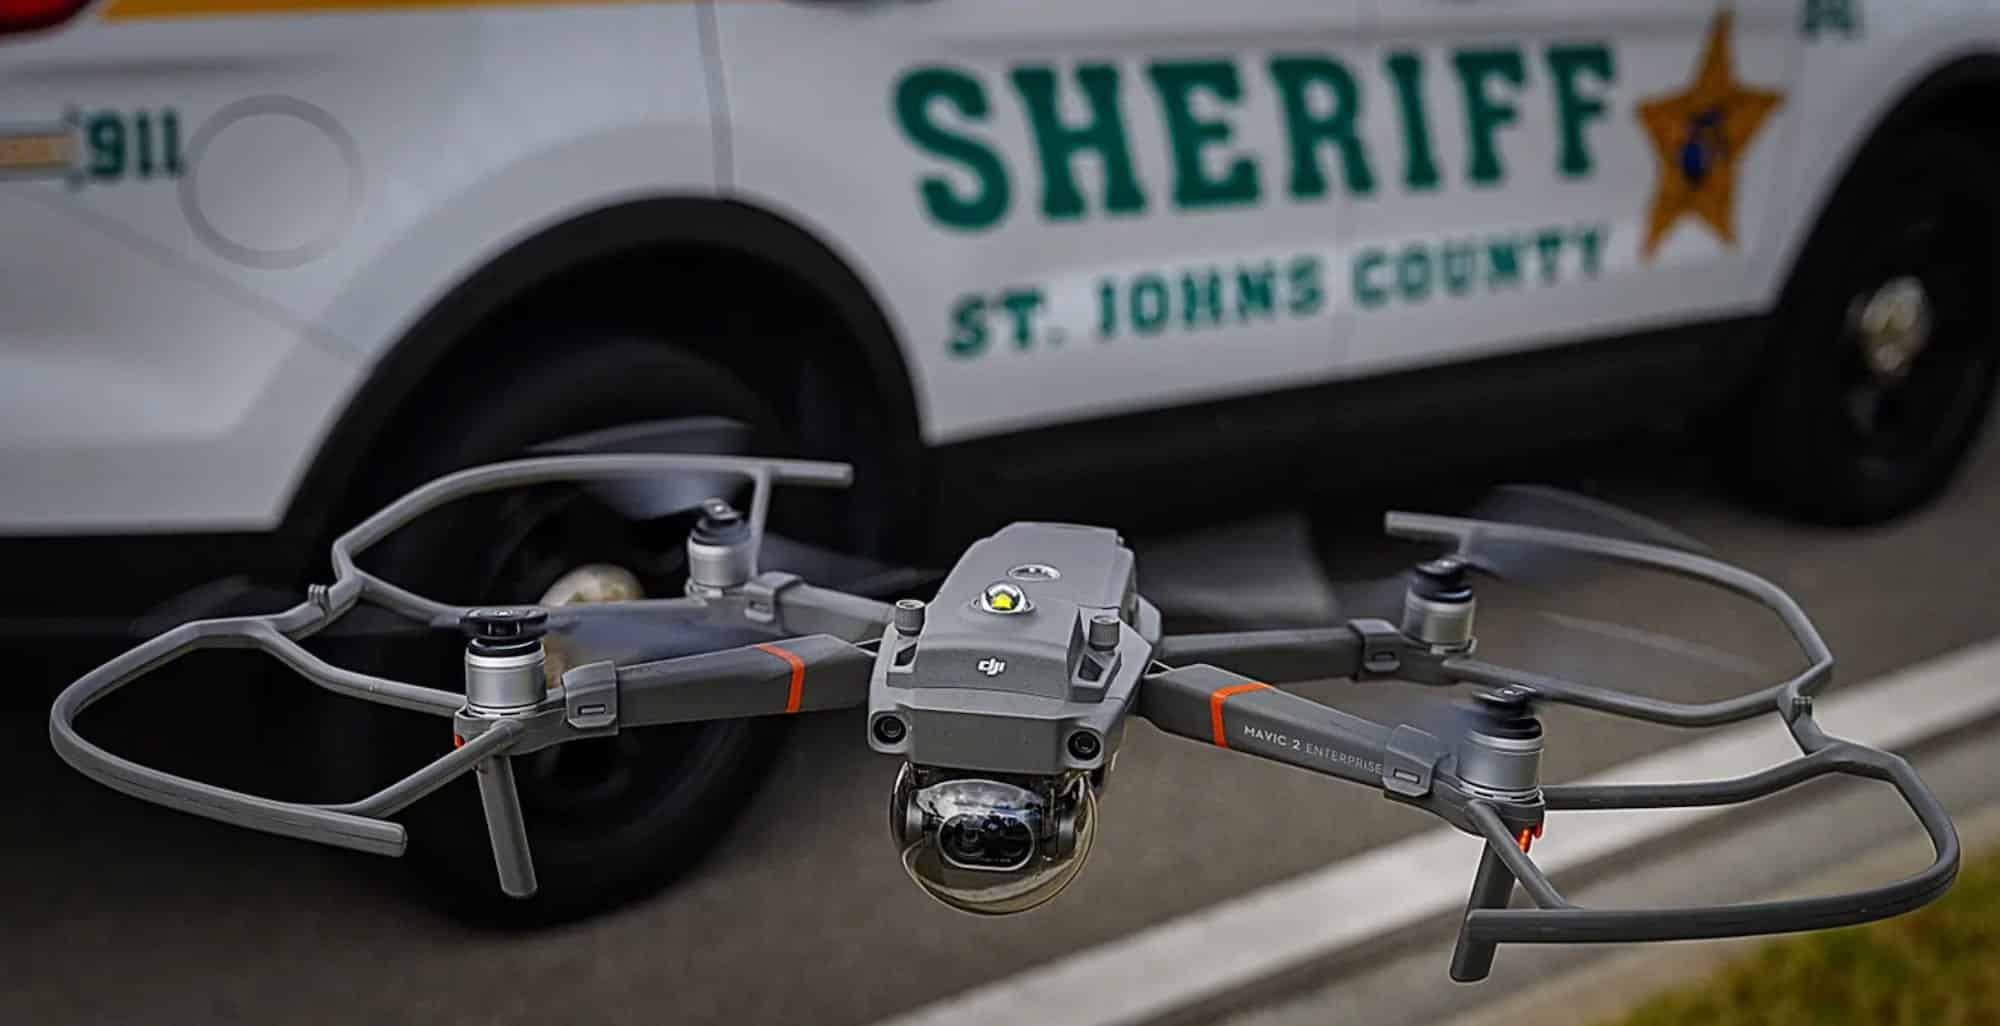 Drones start to play key role at Sheriff's Office